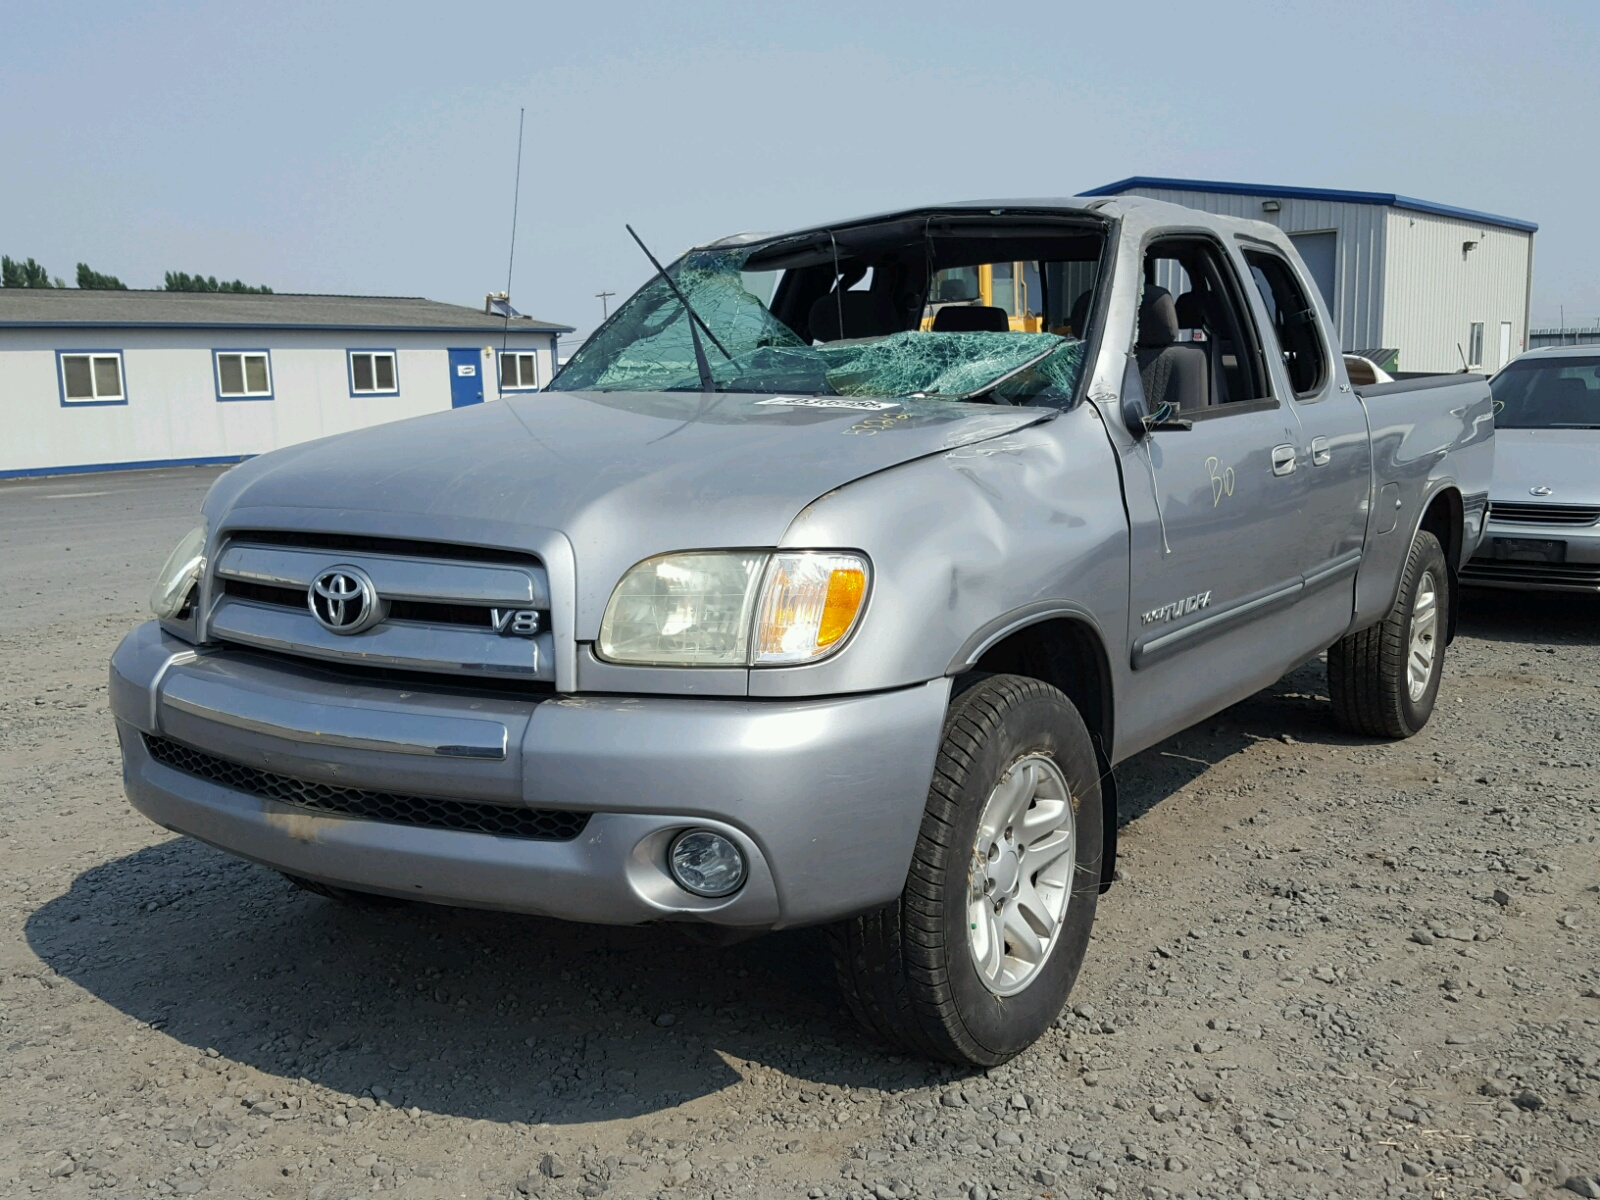 5tbbt44184s445737 2004 Gray Toyota Tundra Acc On Sale In Wa Sequoia Loaded 47l Right View